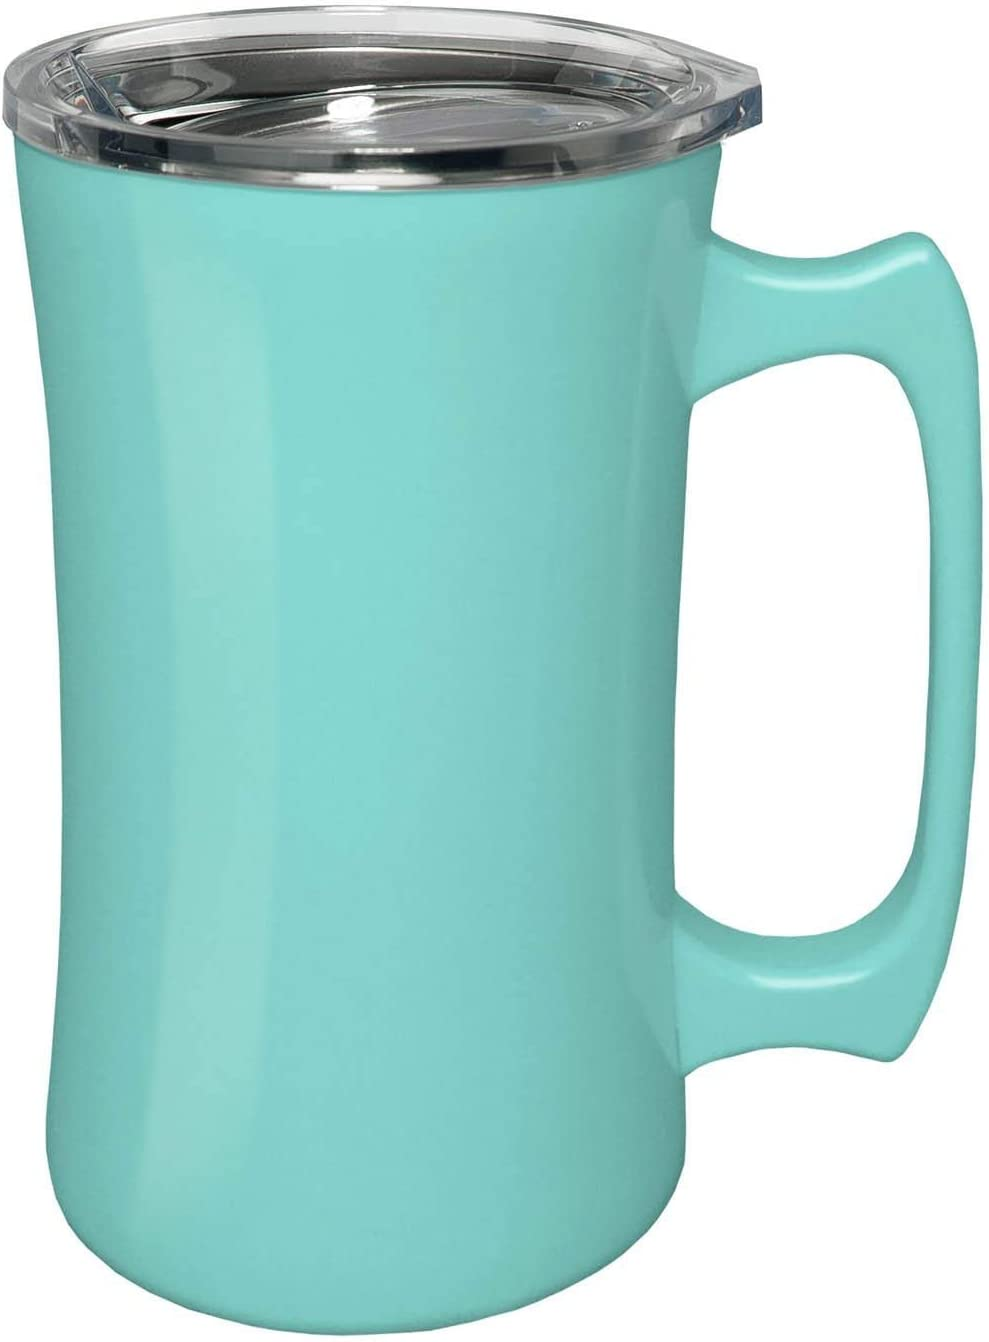 True North Stainless Steel Insulated Beer Mug Tumbler + Tankard with No-Spill BPA Free Triton Lid, Keeps Drinks Warm or Cold for 24 Hours, Perfect for IPA, Coffee, Tea or Wine, 20 oz, Beach Seafoam